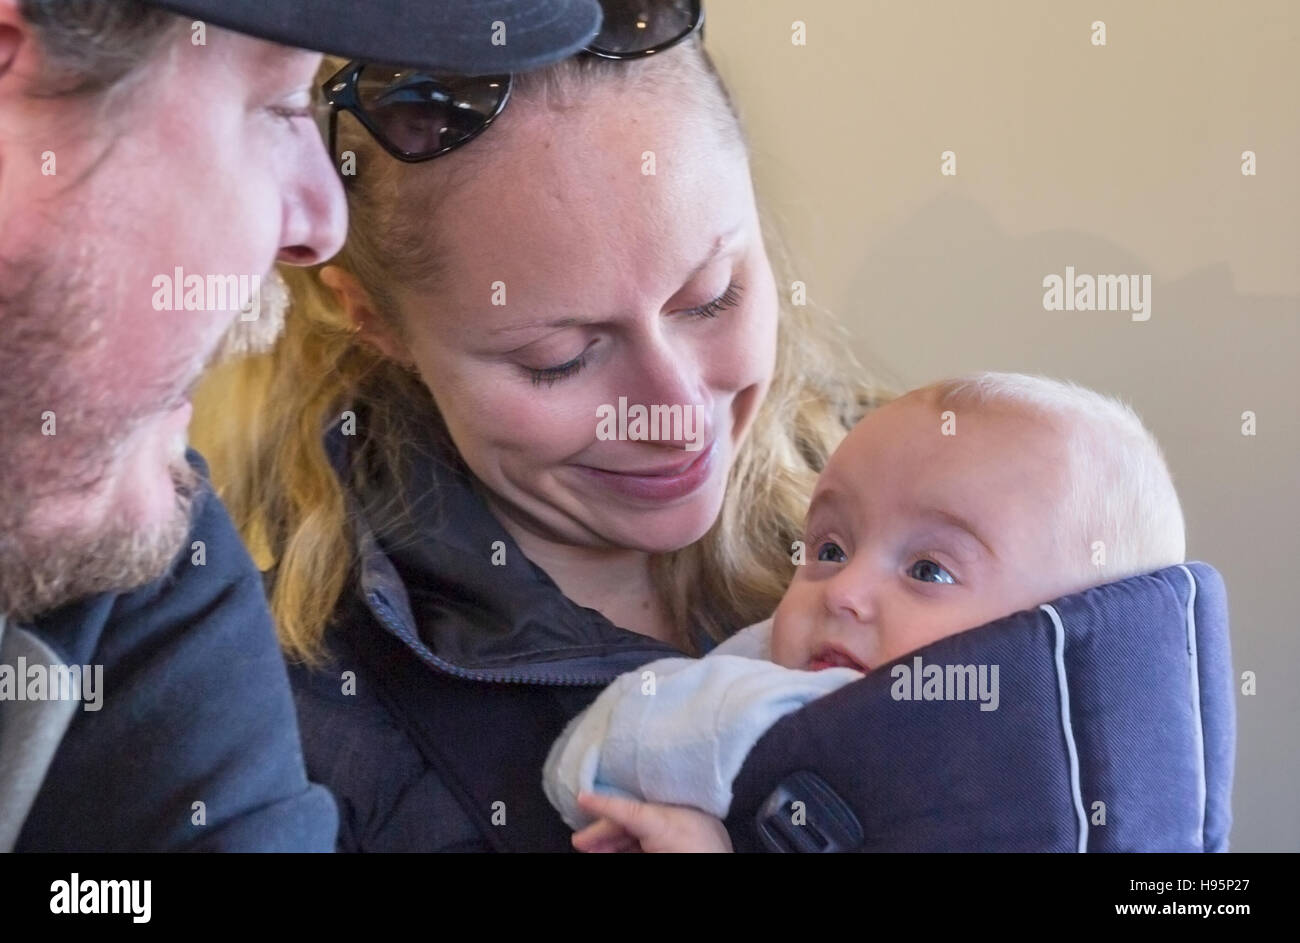 mother and father with 5 month old infant - Stock Image